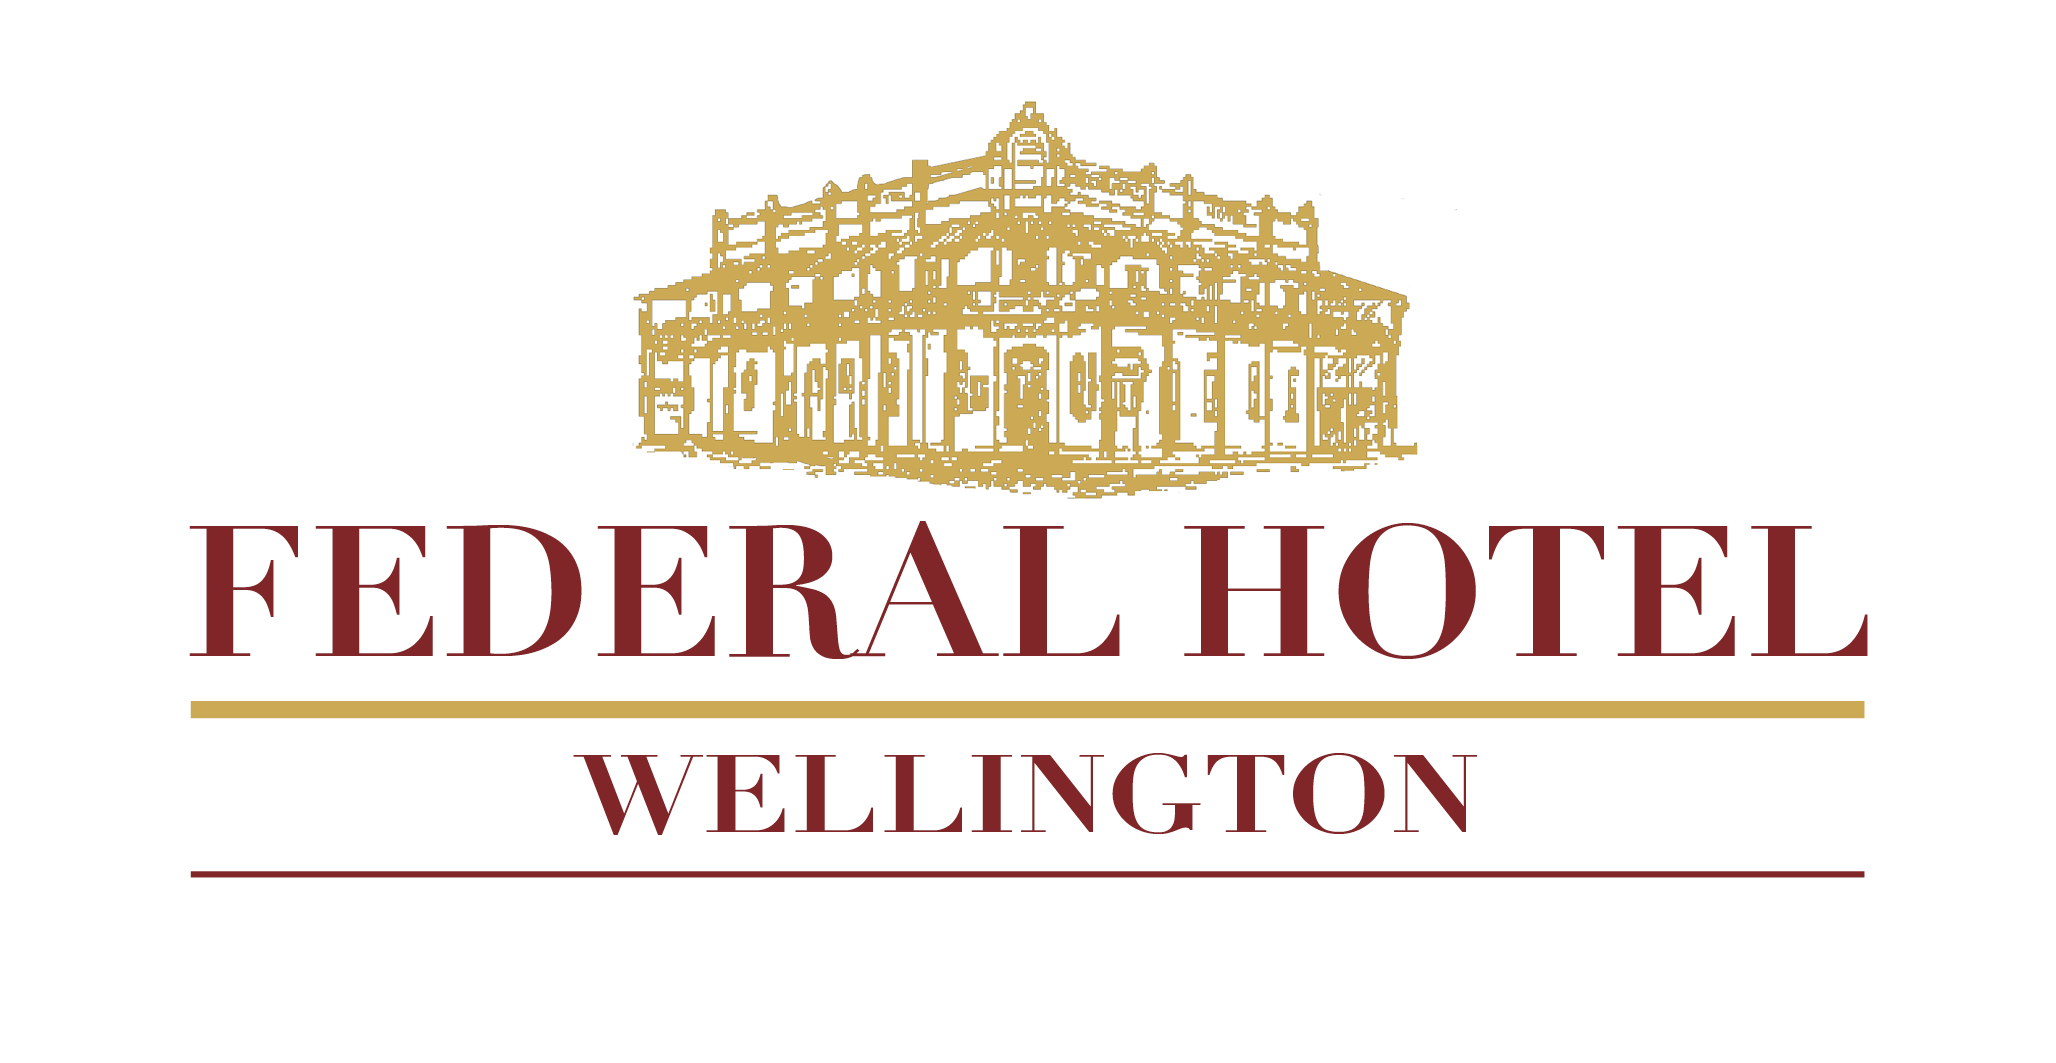 Federal Hotel logo with image.jpg